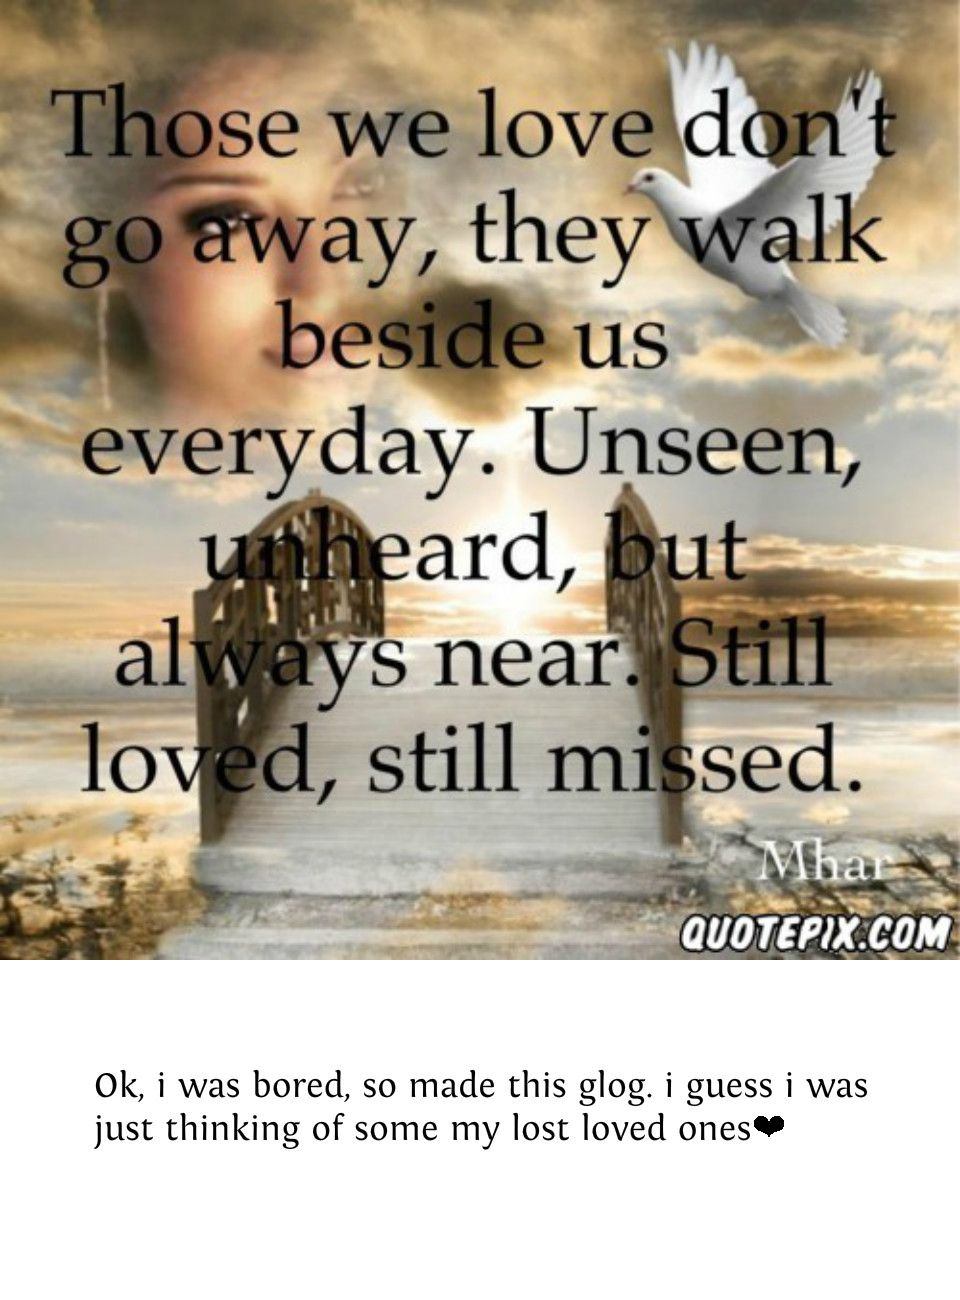 Honoring Lost Loved Ones Quotes : For lost loved ones IN MEMORY Pinterest Lost, In love and Quotes ...